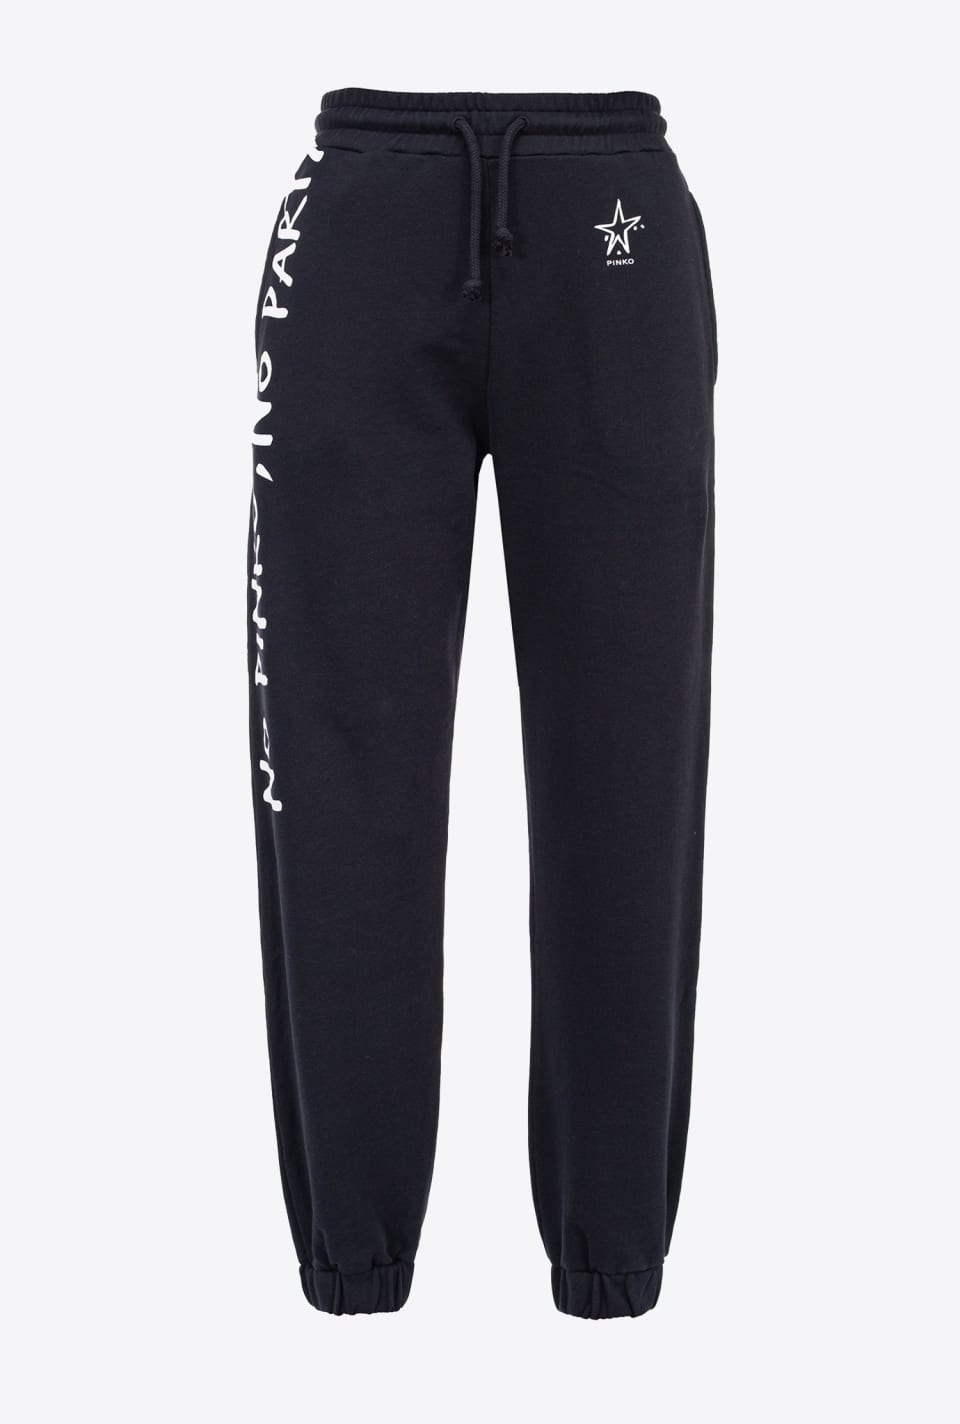 Sweatjoggers No PINKO No Party - Pinko